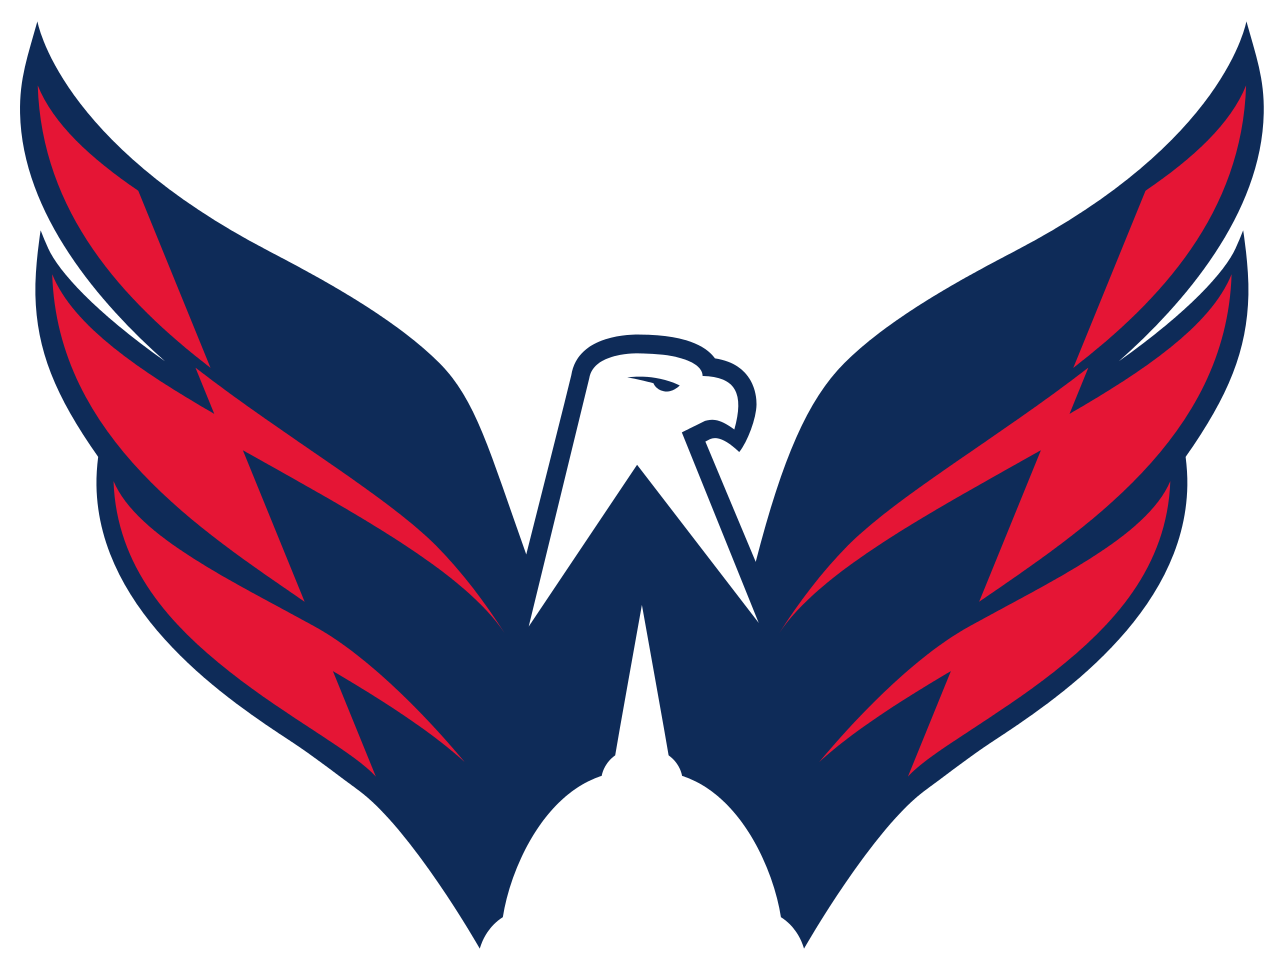 League Playoffs Cup National Capitals Washington Heart PNG Image